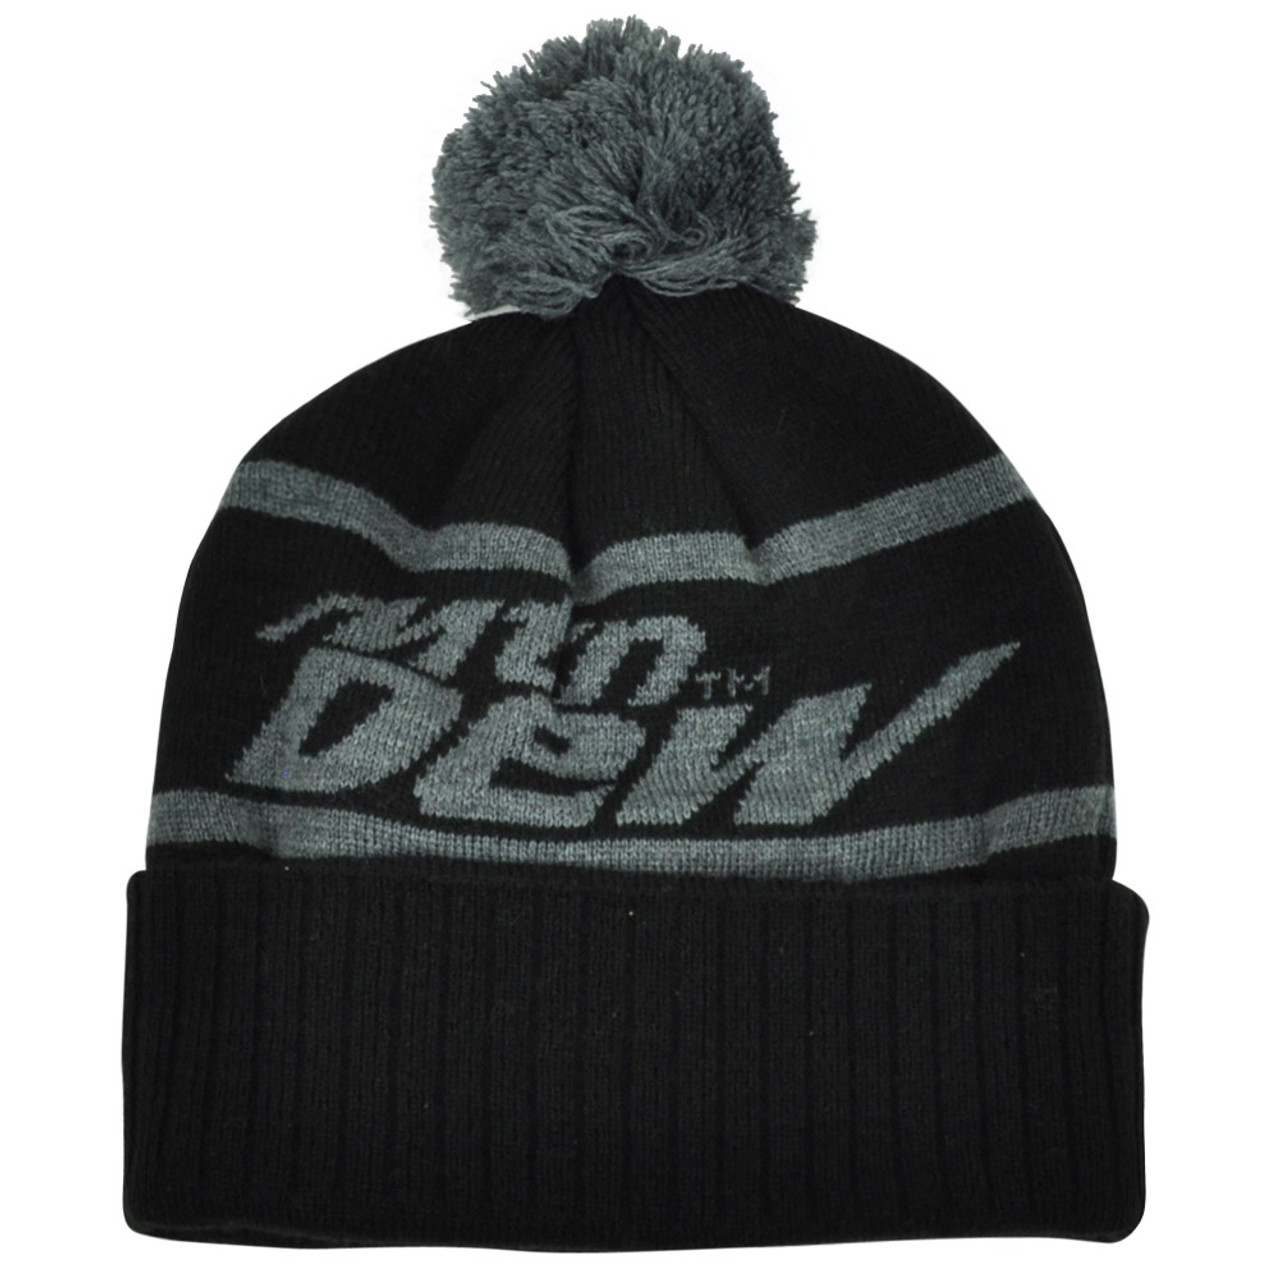 ce845a27e7a Mountain Dew Word Mark Pom Pom Knit Beanie Cuffed Black Grey Hat Toque Soda  Pop - Cap Store Online.com